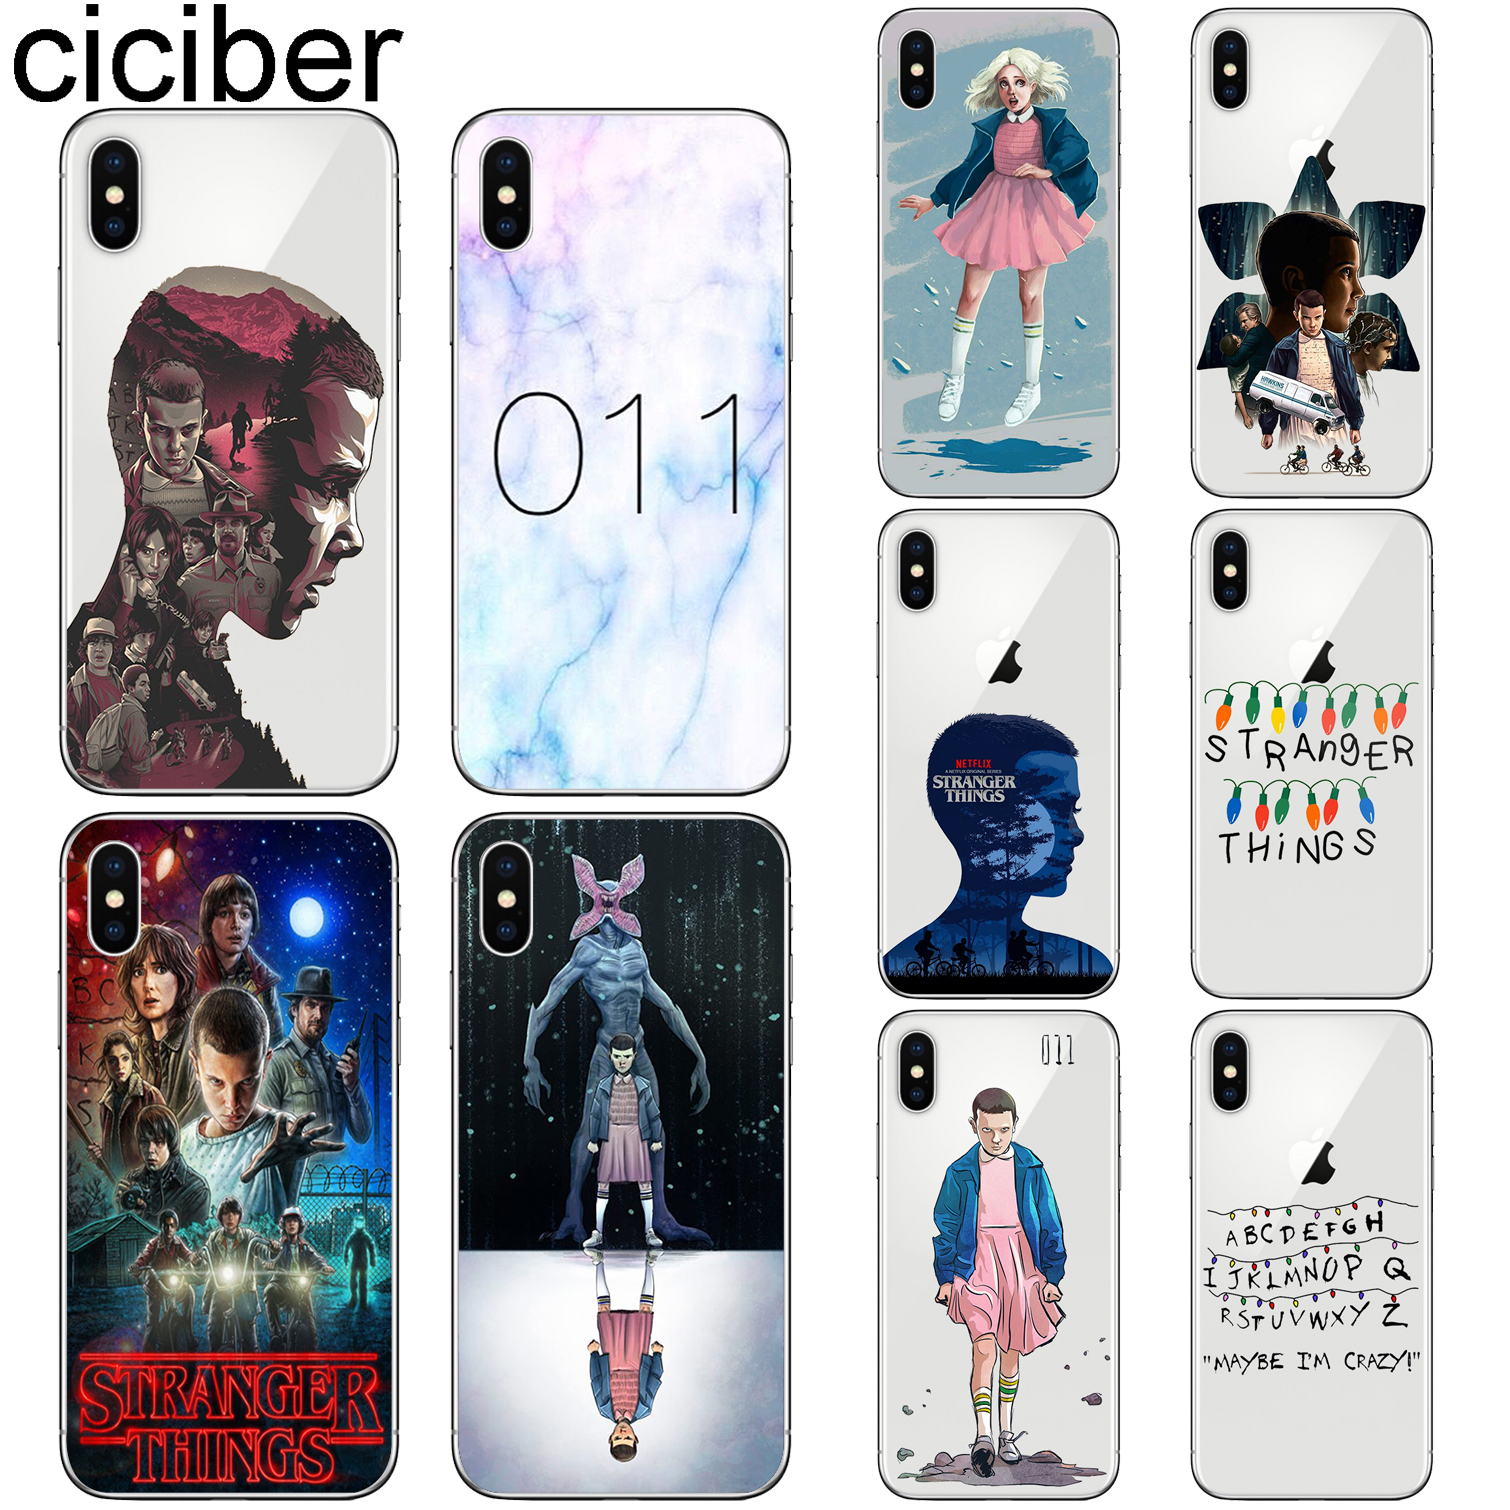 ciciber Stranger Things Cover Funda for Iphone 7 8 6 6S Plus 5S SE 11 Pro Max Soft TPU Phone Case X XS MAX XR Coque